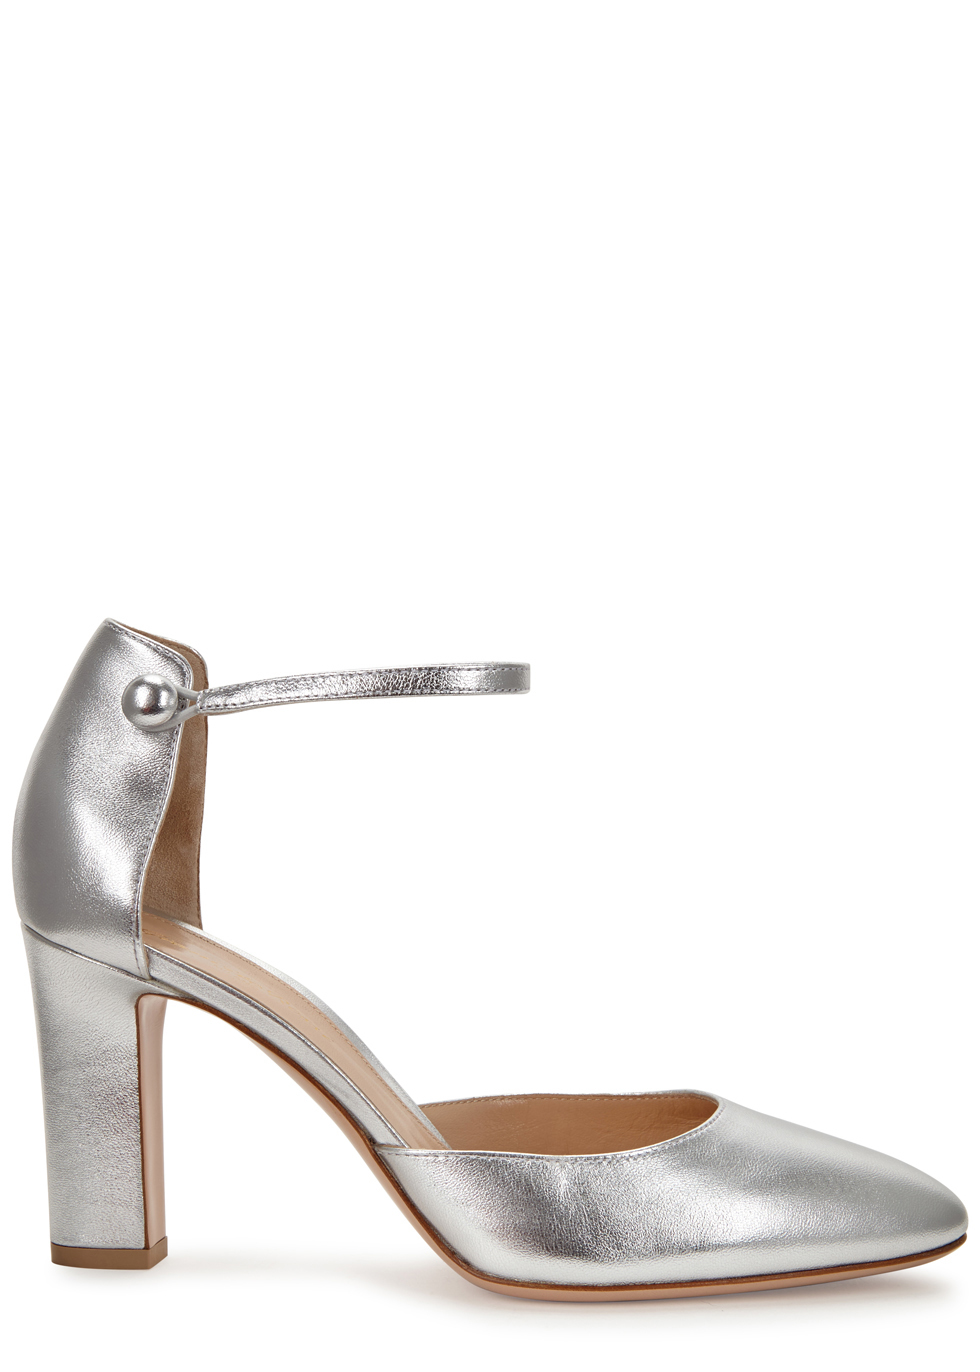 Silver Leather Pumps - predominant colour: silver; occasions: evening; material: leather; heel height: high; ankle detail: ankle strap; heel: block; toe: round toe; style: courts; finish: metallic; pattern: plain; season: a/w 2016; wardrobe: event